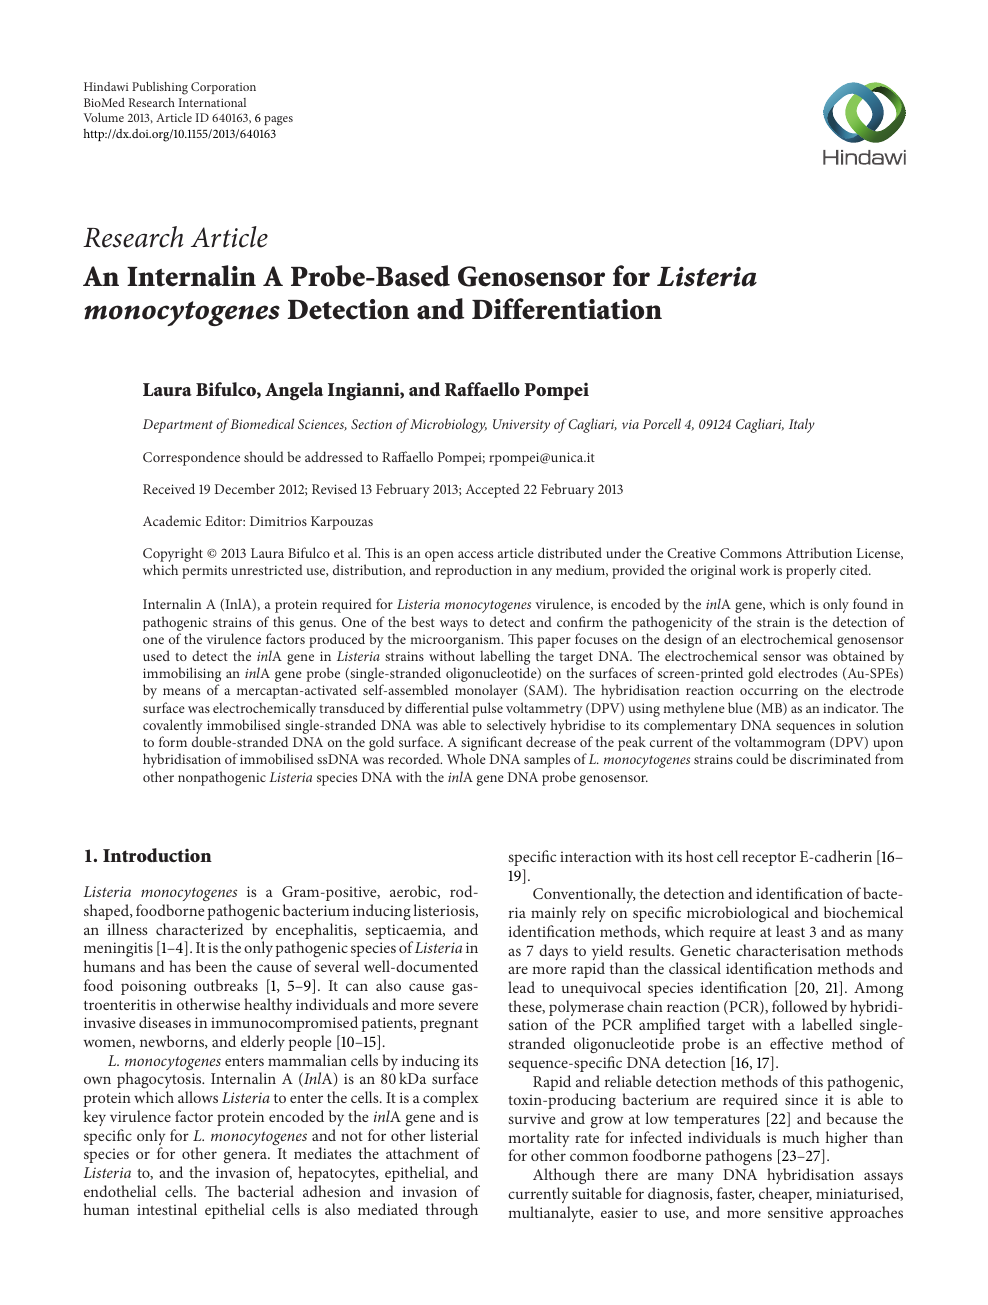 An Internalin A Probe Based Genosensor For Listeria Monocytogenes Detection And Differentiation Topic Of Research Paper In Chemical Sciences Download Scholarly Article Pdf Read Free On Cyberleninka Open Science Hub